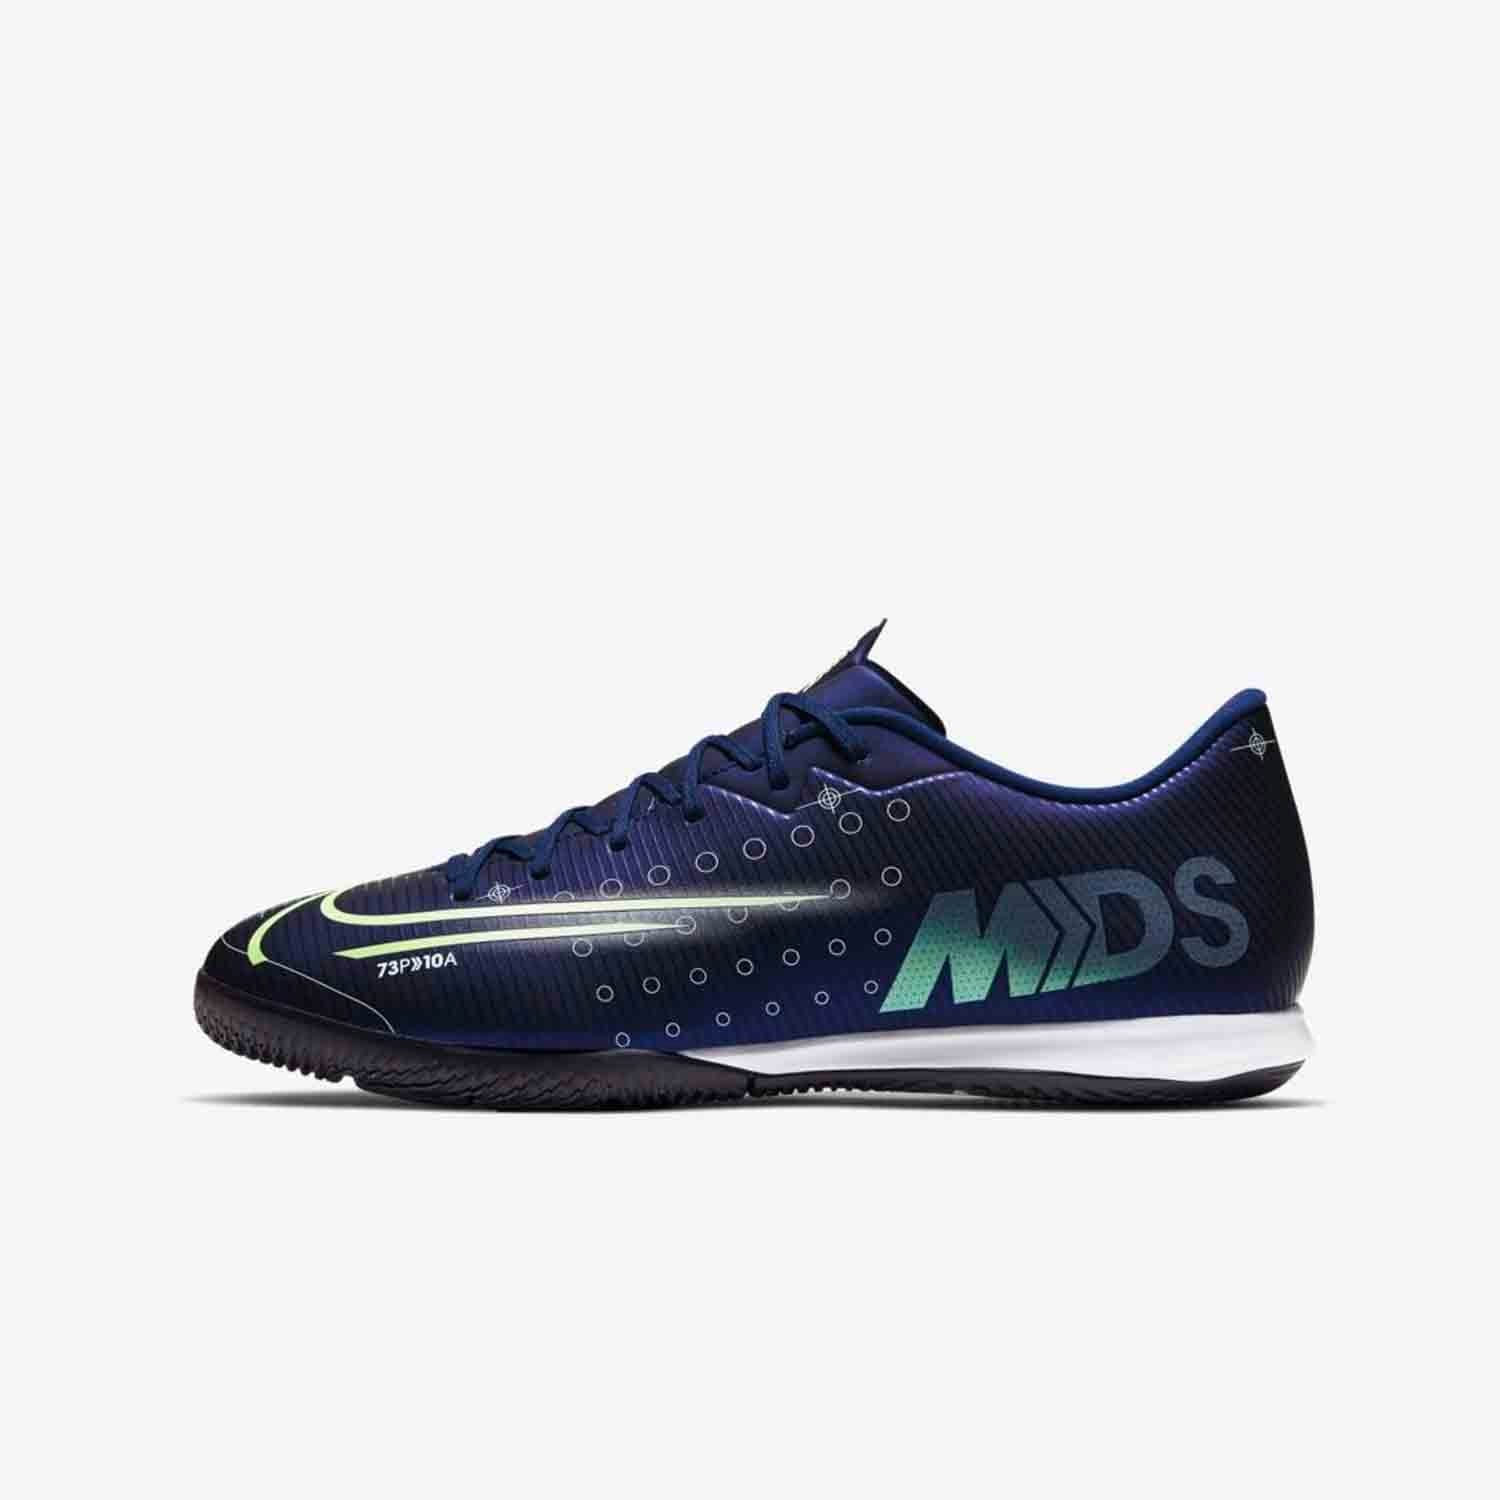 Mercurial Men's Vapor 13 Academy MDS IC Indoor Soccer Shoe